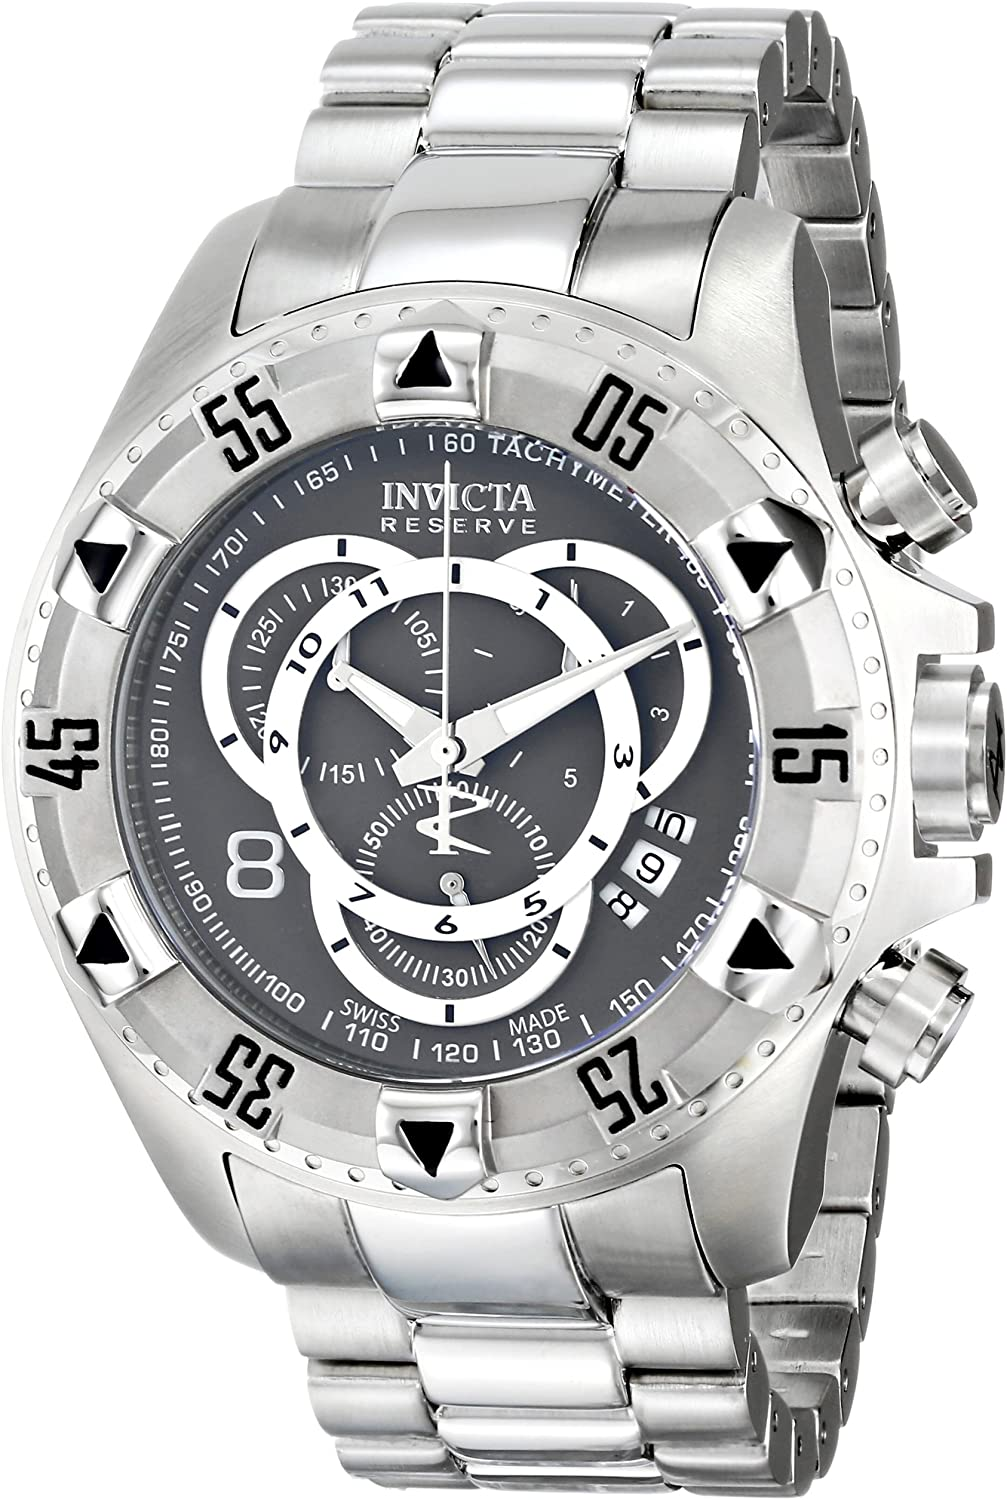 Invicta Men s 5524 Reserve Collection Chronograph Touring Edition Stainless Steel Watch